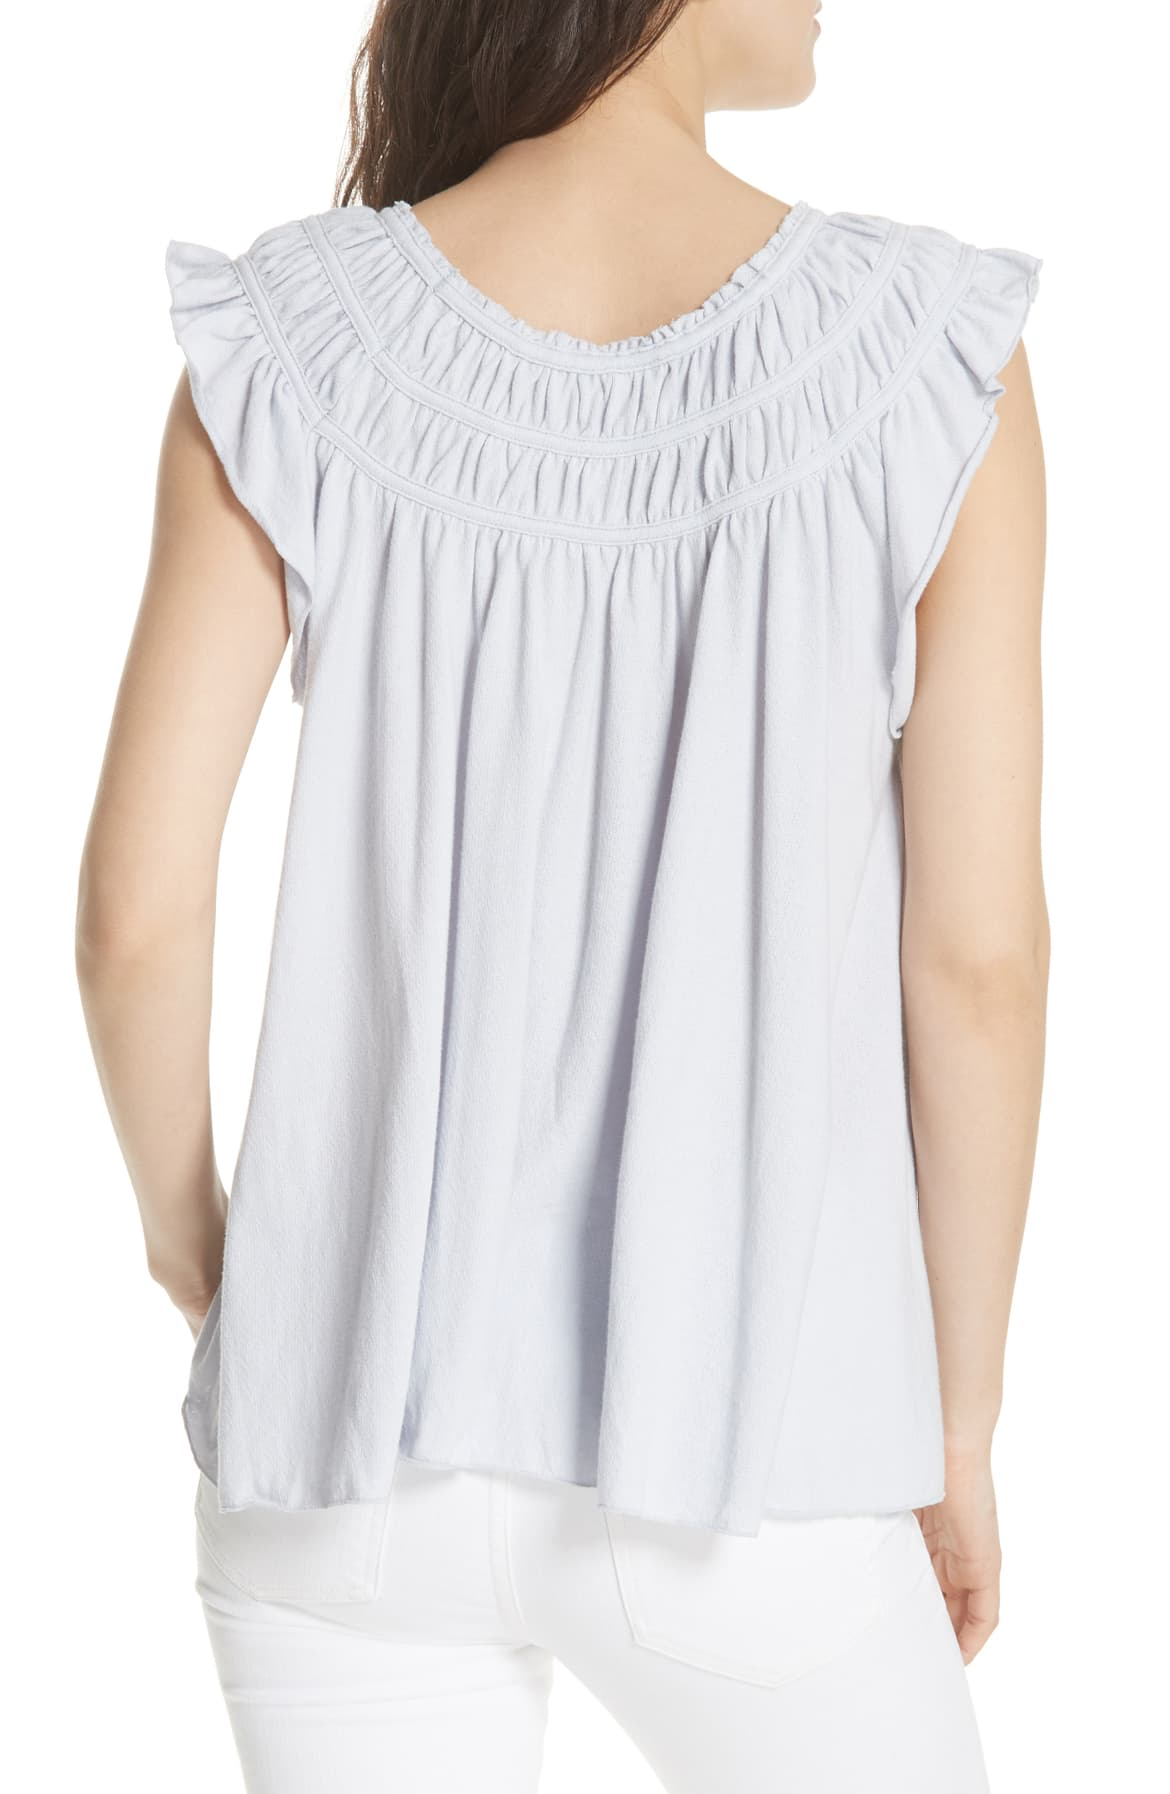 Free People Coconut Ruffled T-Shirt Pastel Blue M - Gear Relapse